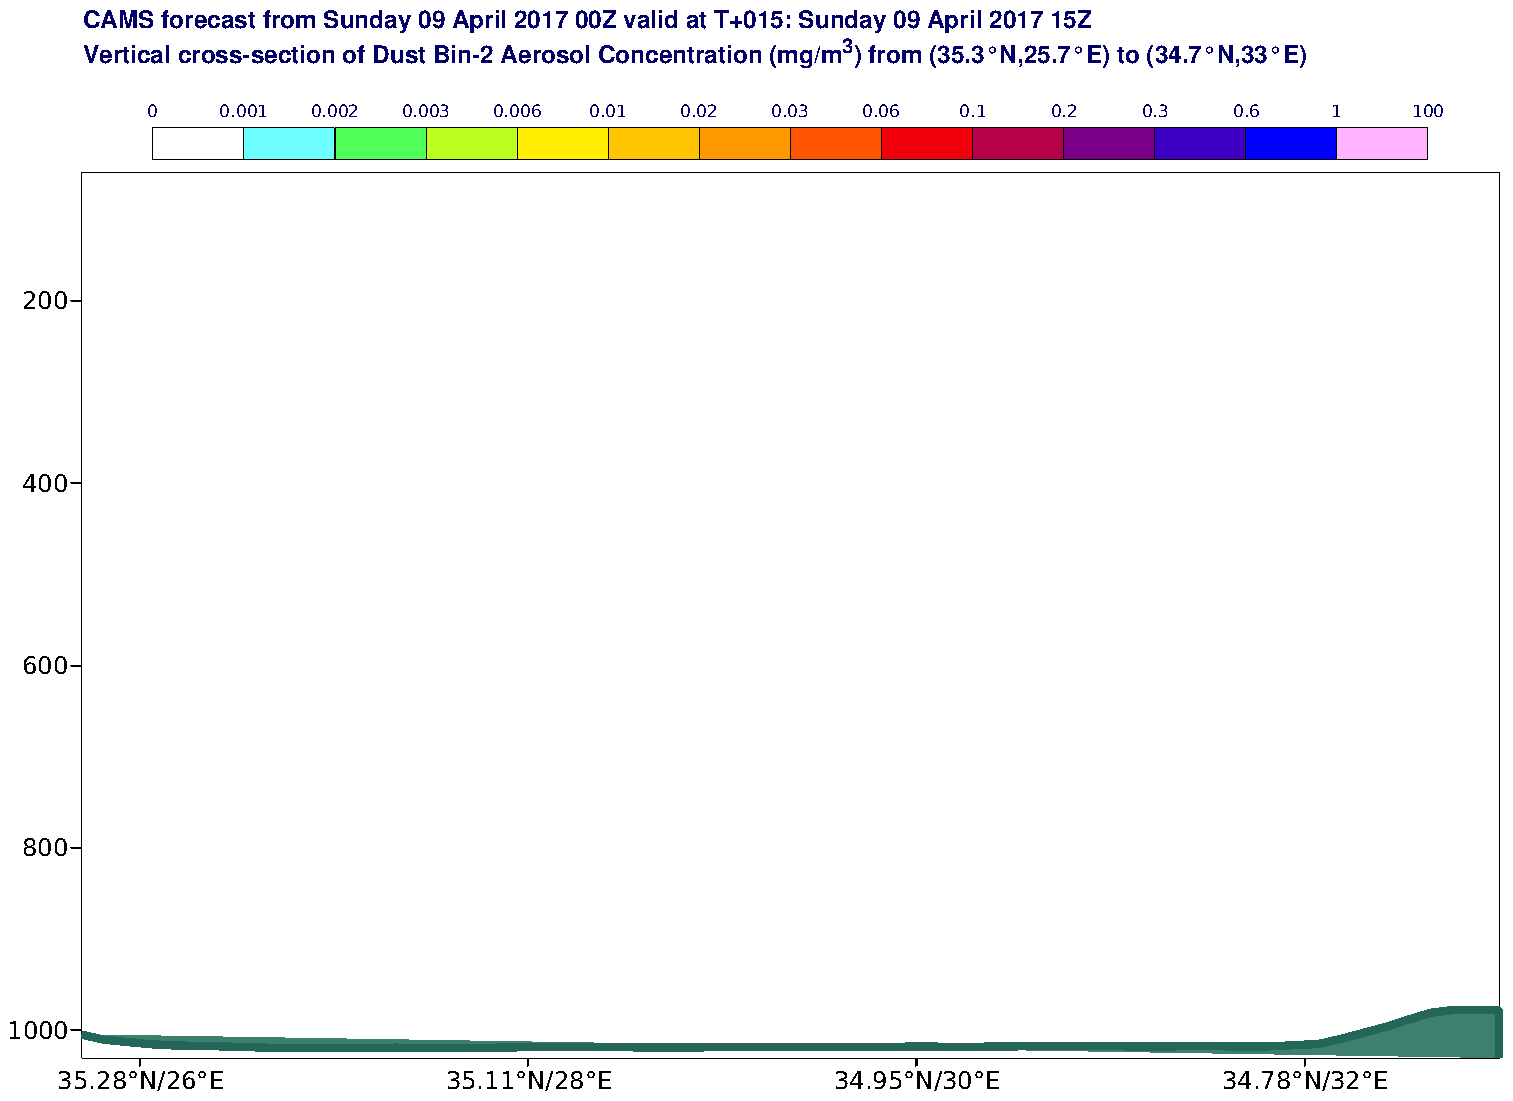 Vertical cross-section of Dust Bin-2 Aerosol Concentration (mg/m3) valid at T15 - 2017-04-09 15:00